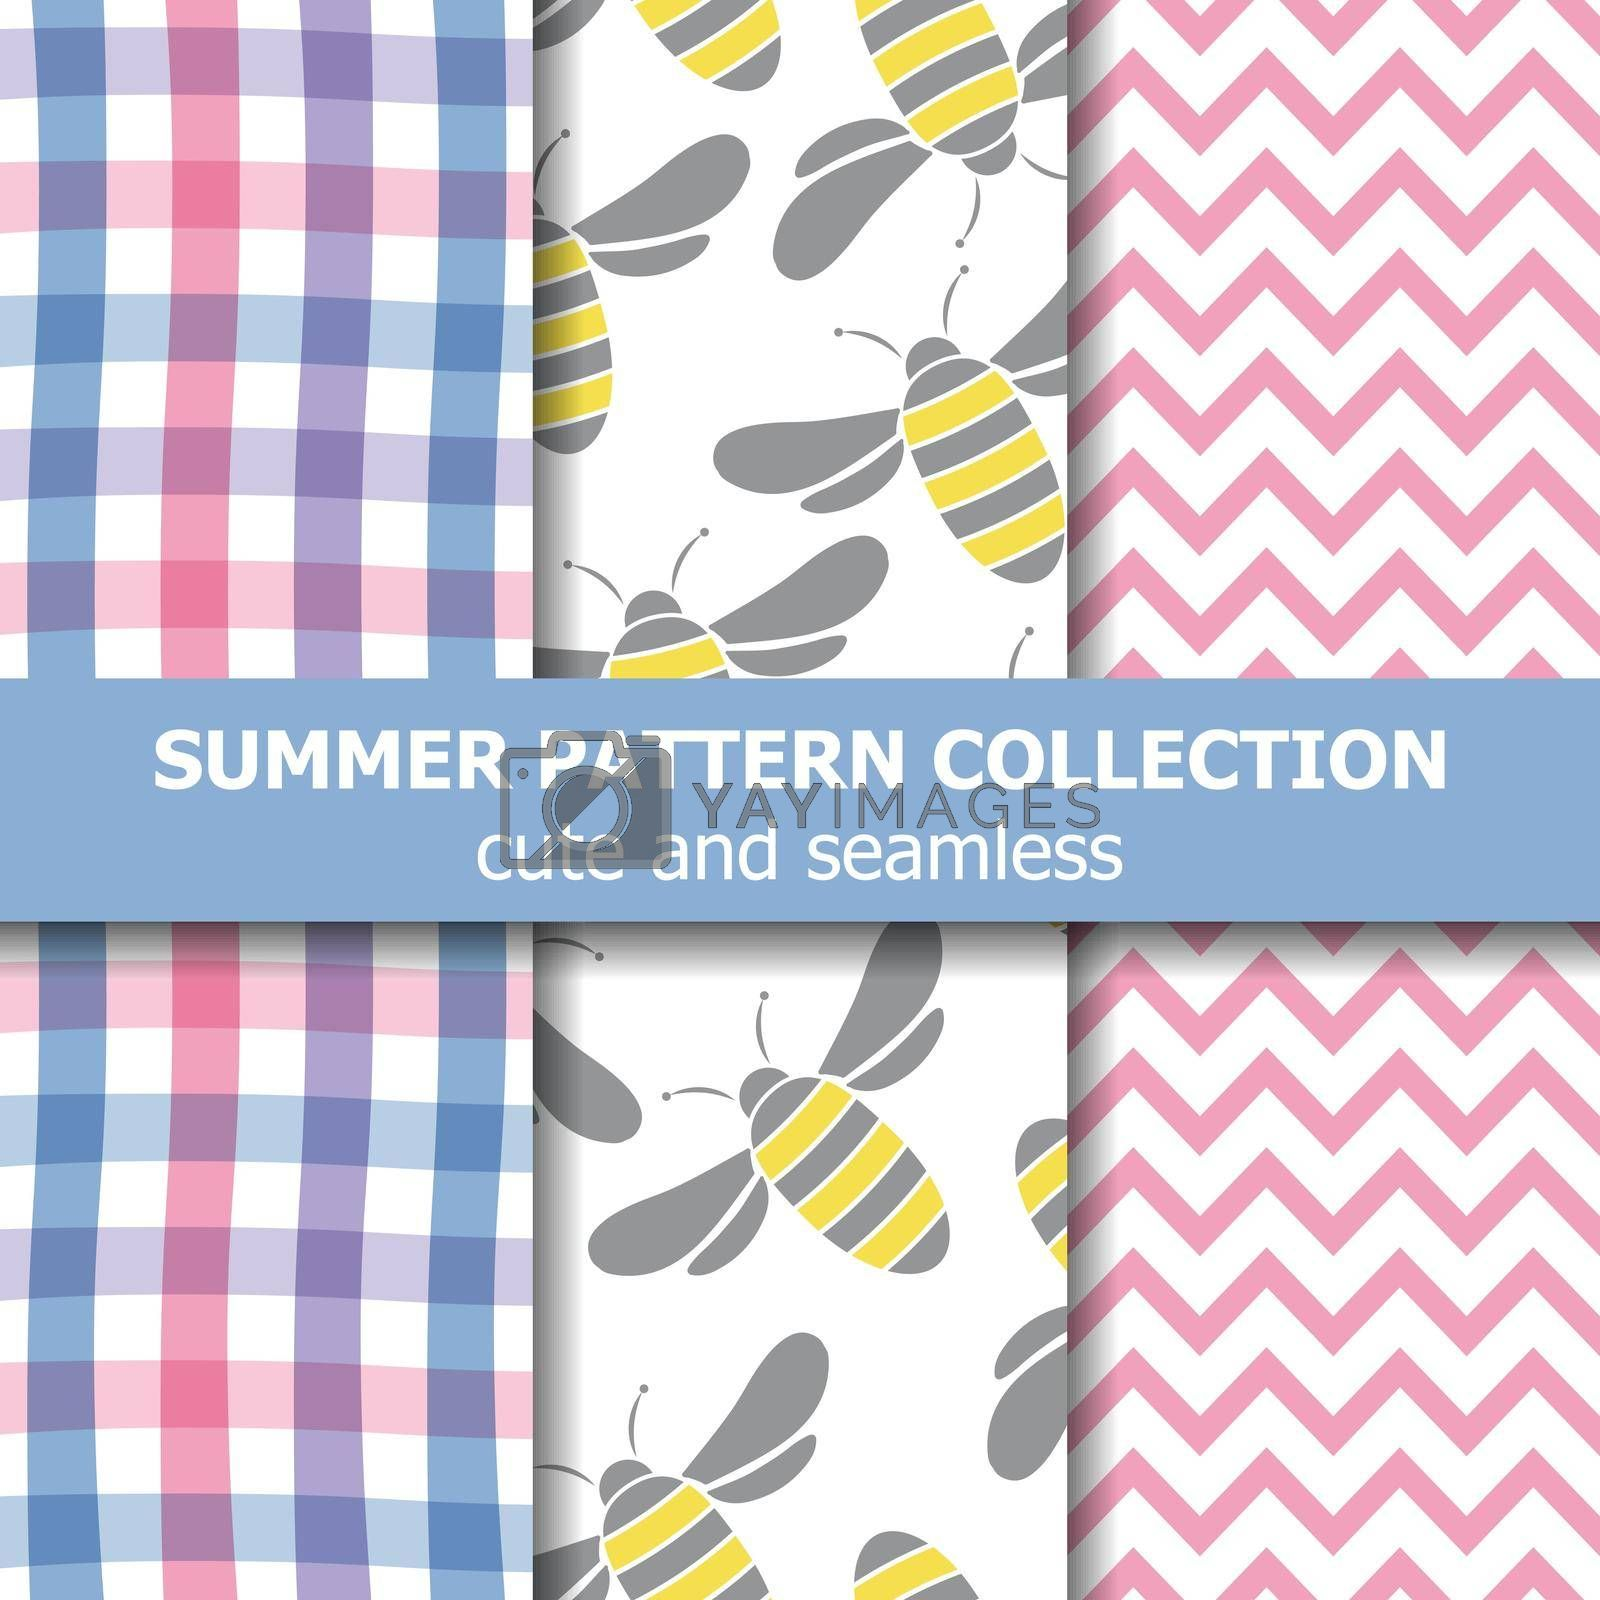 Summer pattern collection. Bees theme. Summer banner. Vector